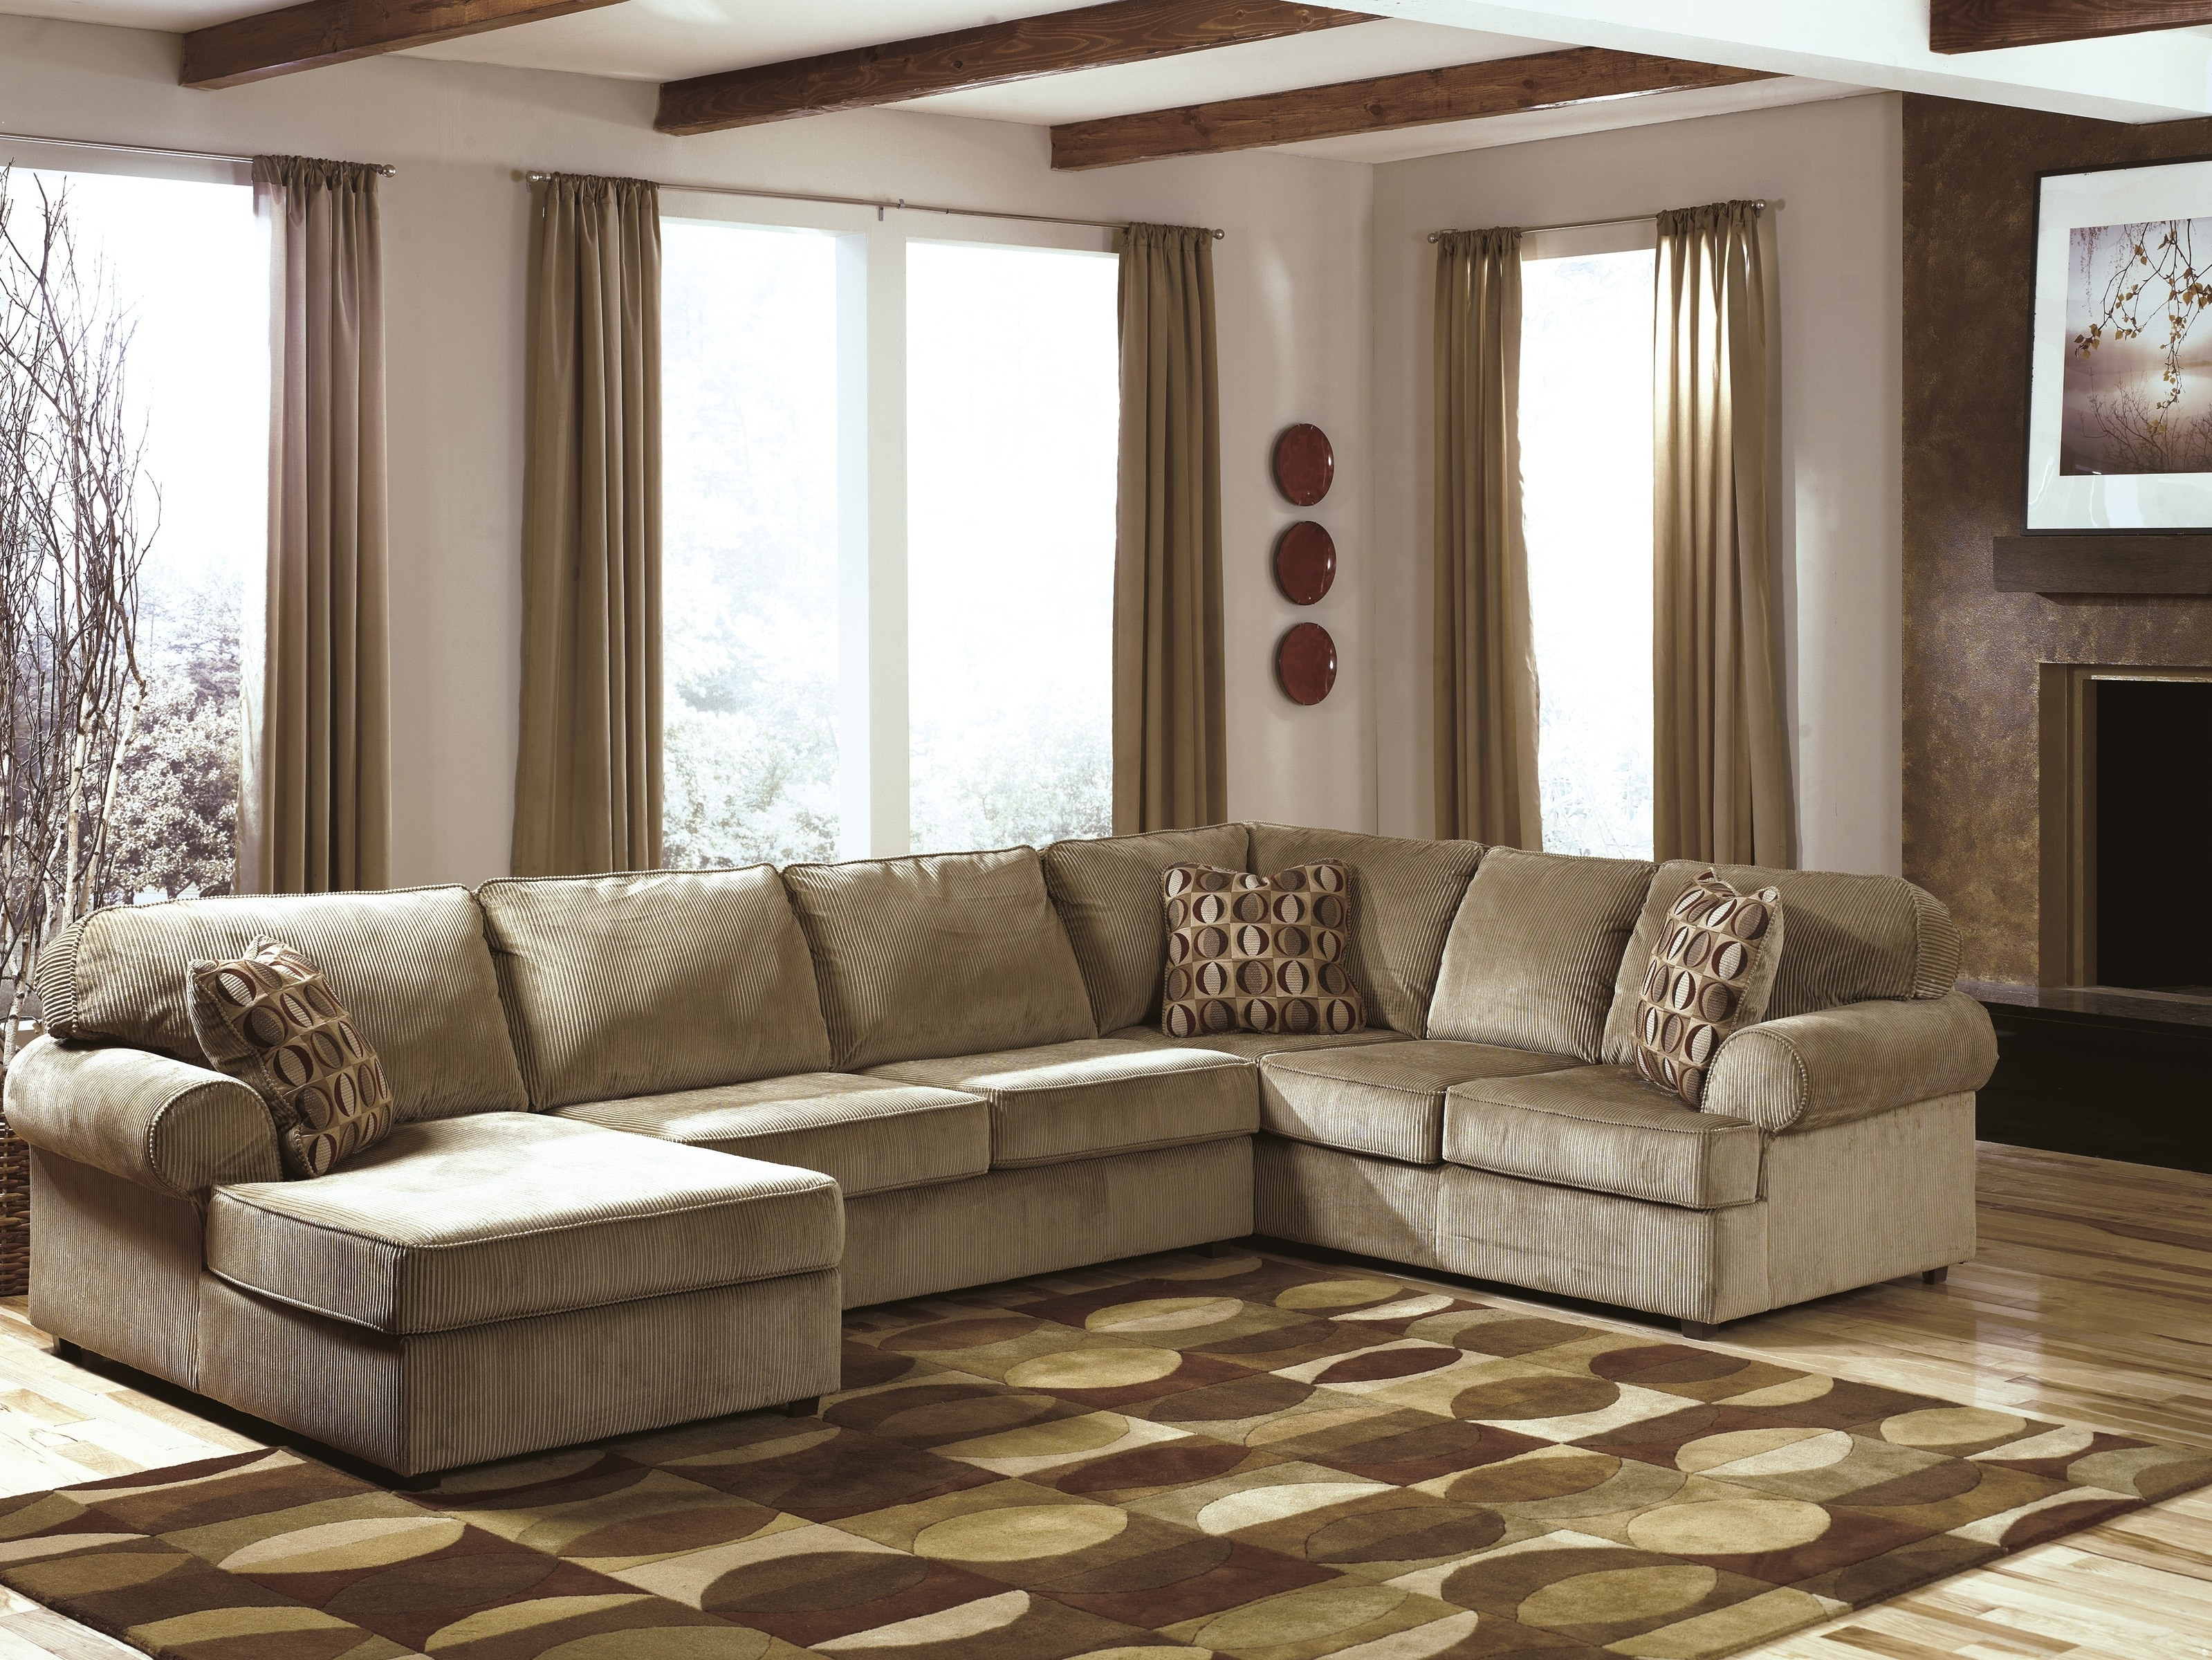 Quality Sectional Sofas | Ezhandui Intended For Quality Sectional Sofas (Image 10 of 10)